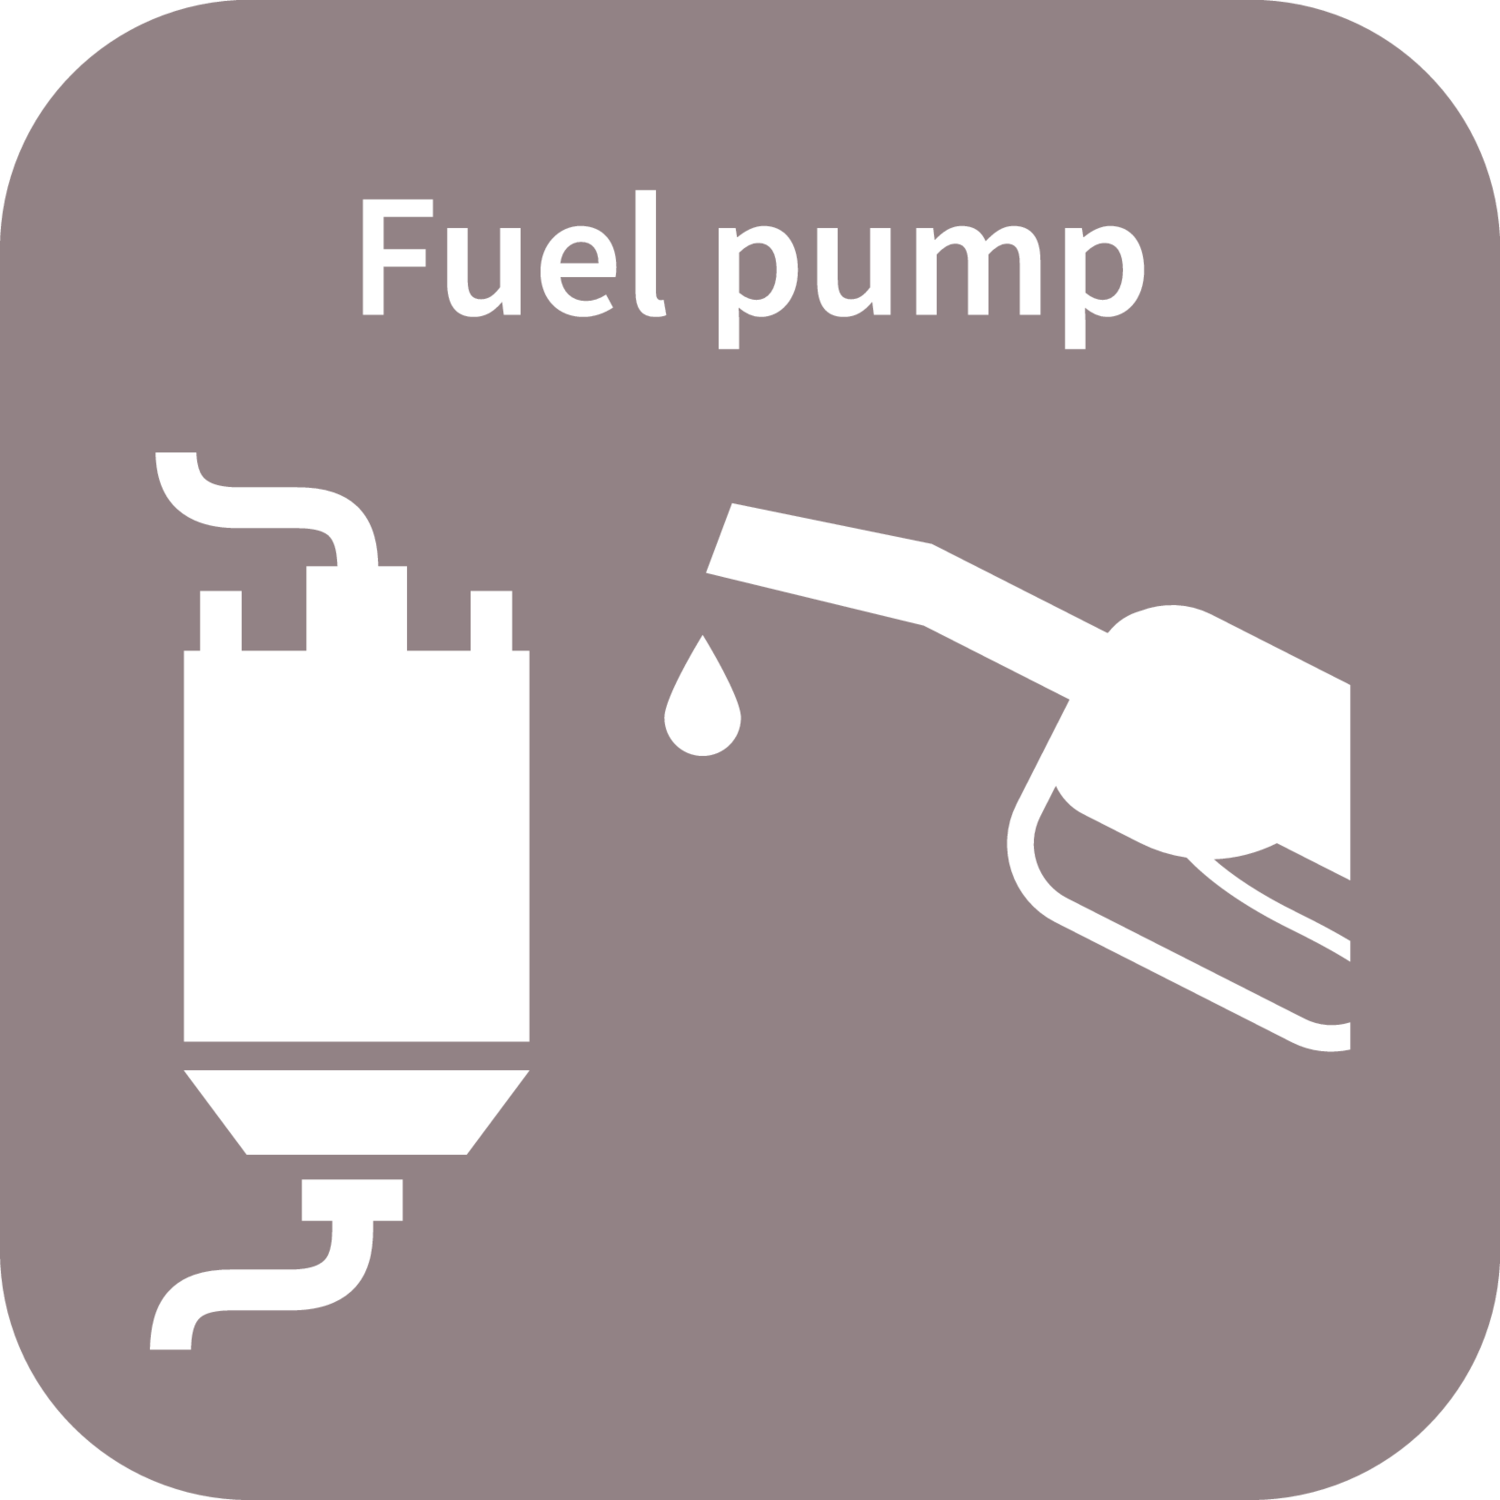 Fuelpump